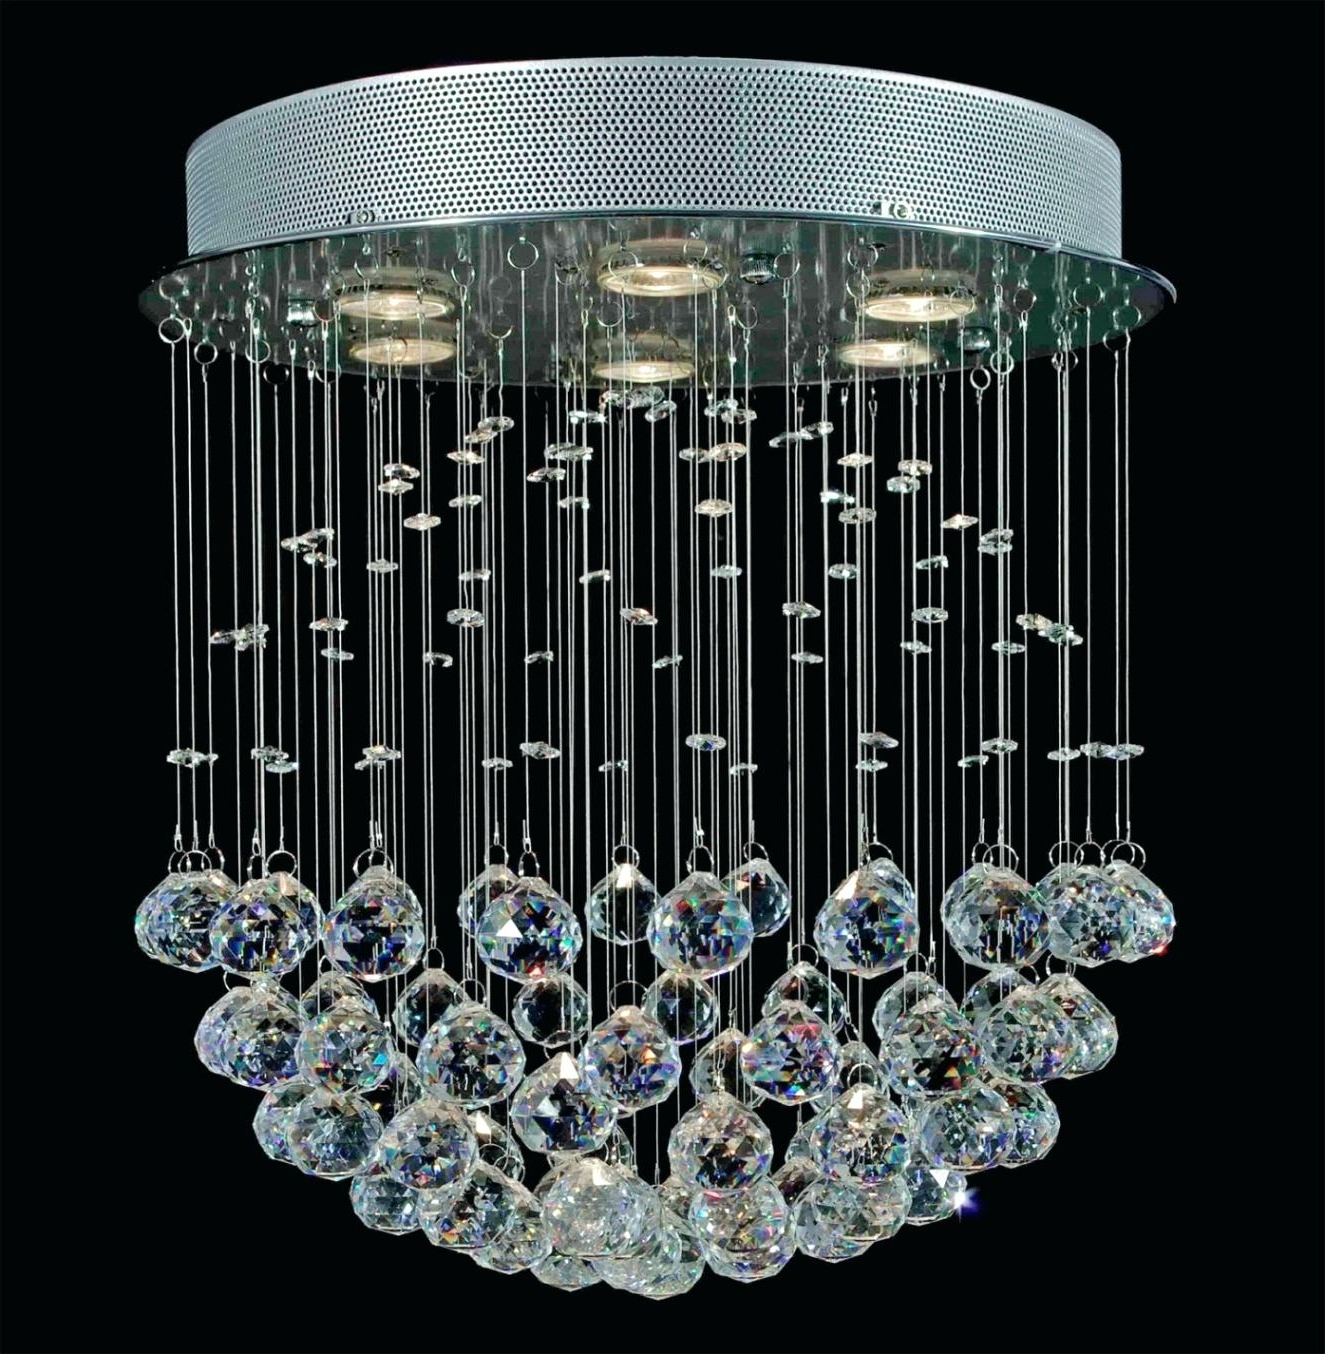 Home Design : Winsome Chandeliers At Costco 7 Light Led Chandelier 3 With Regard To Popular Costco Chandeliers (View 14 of 20)